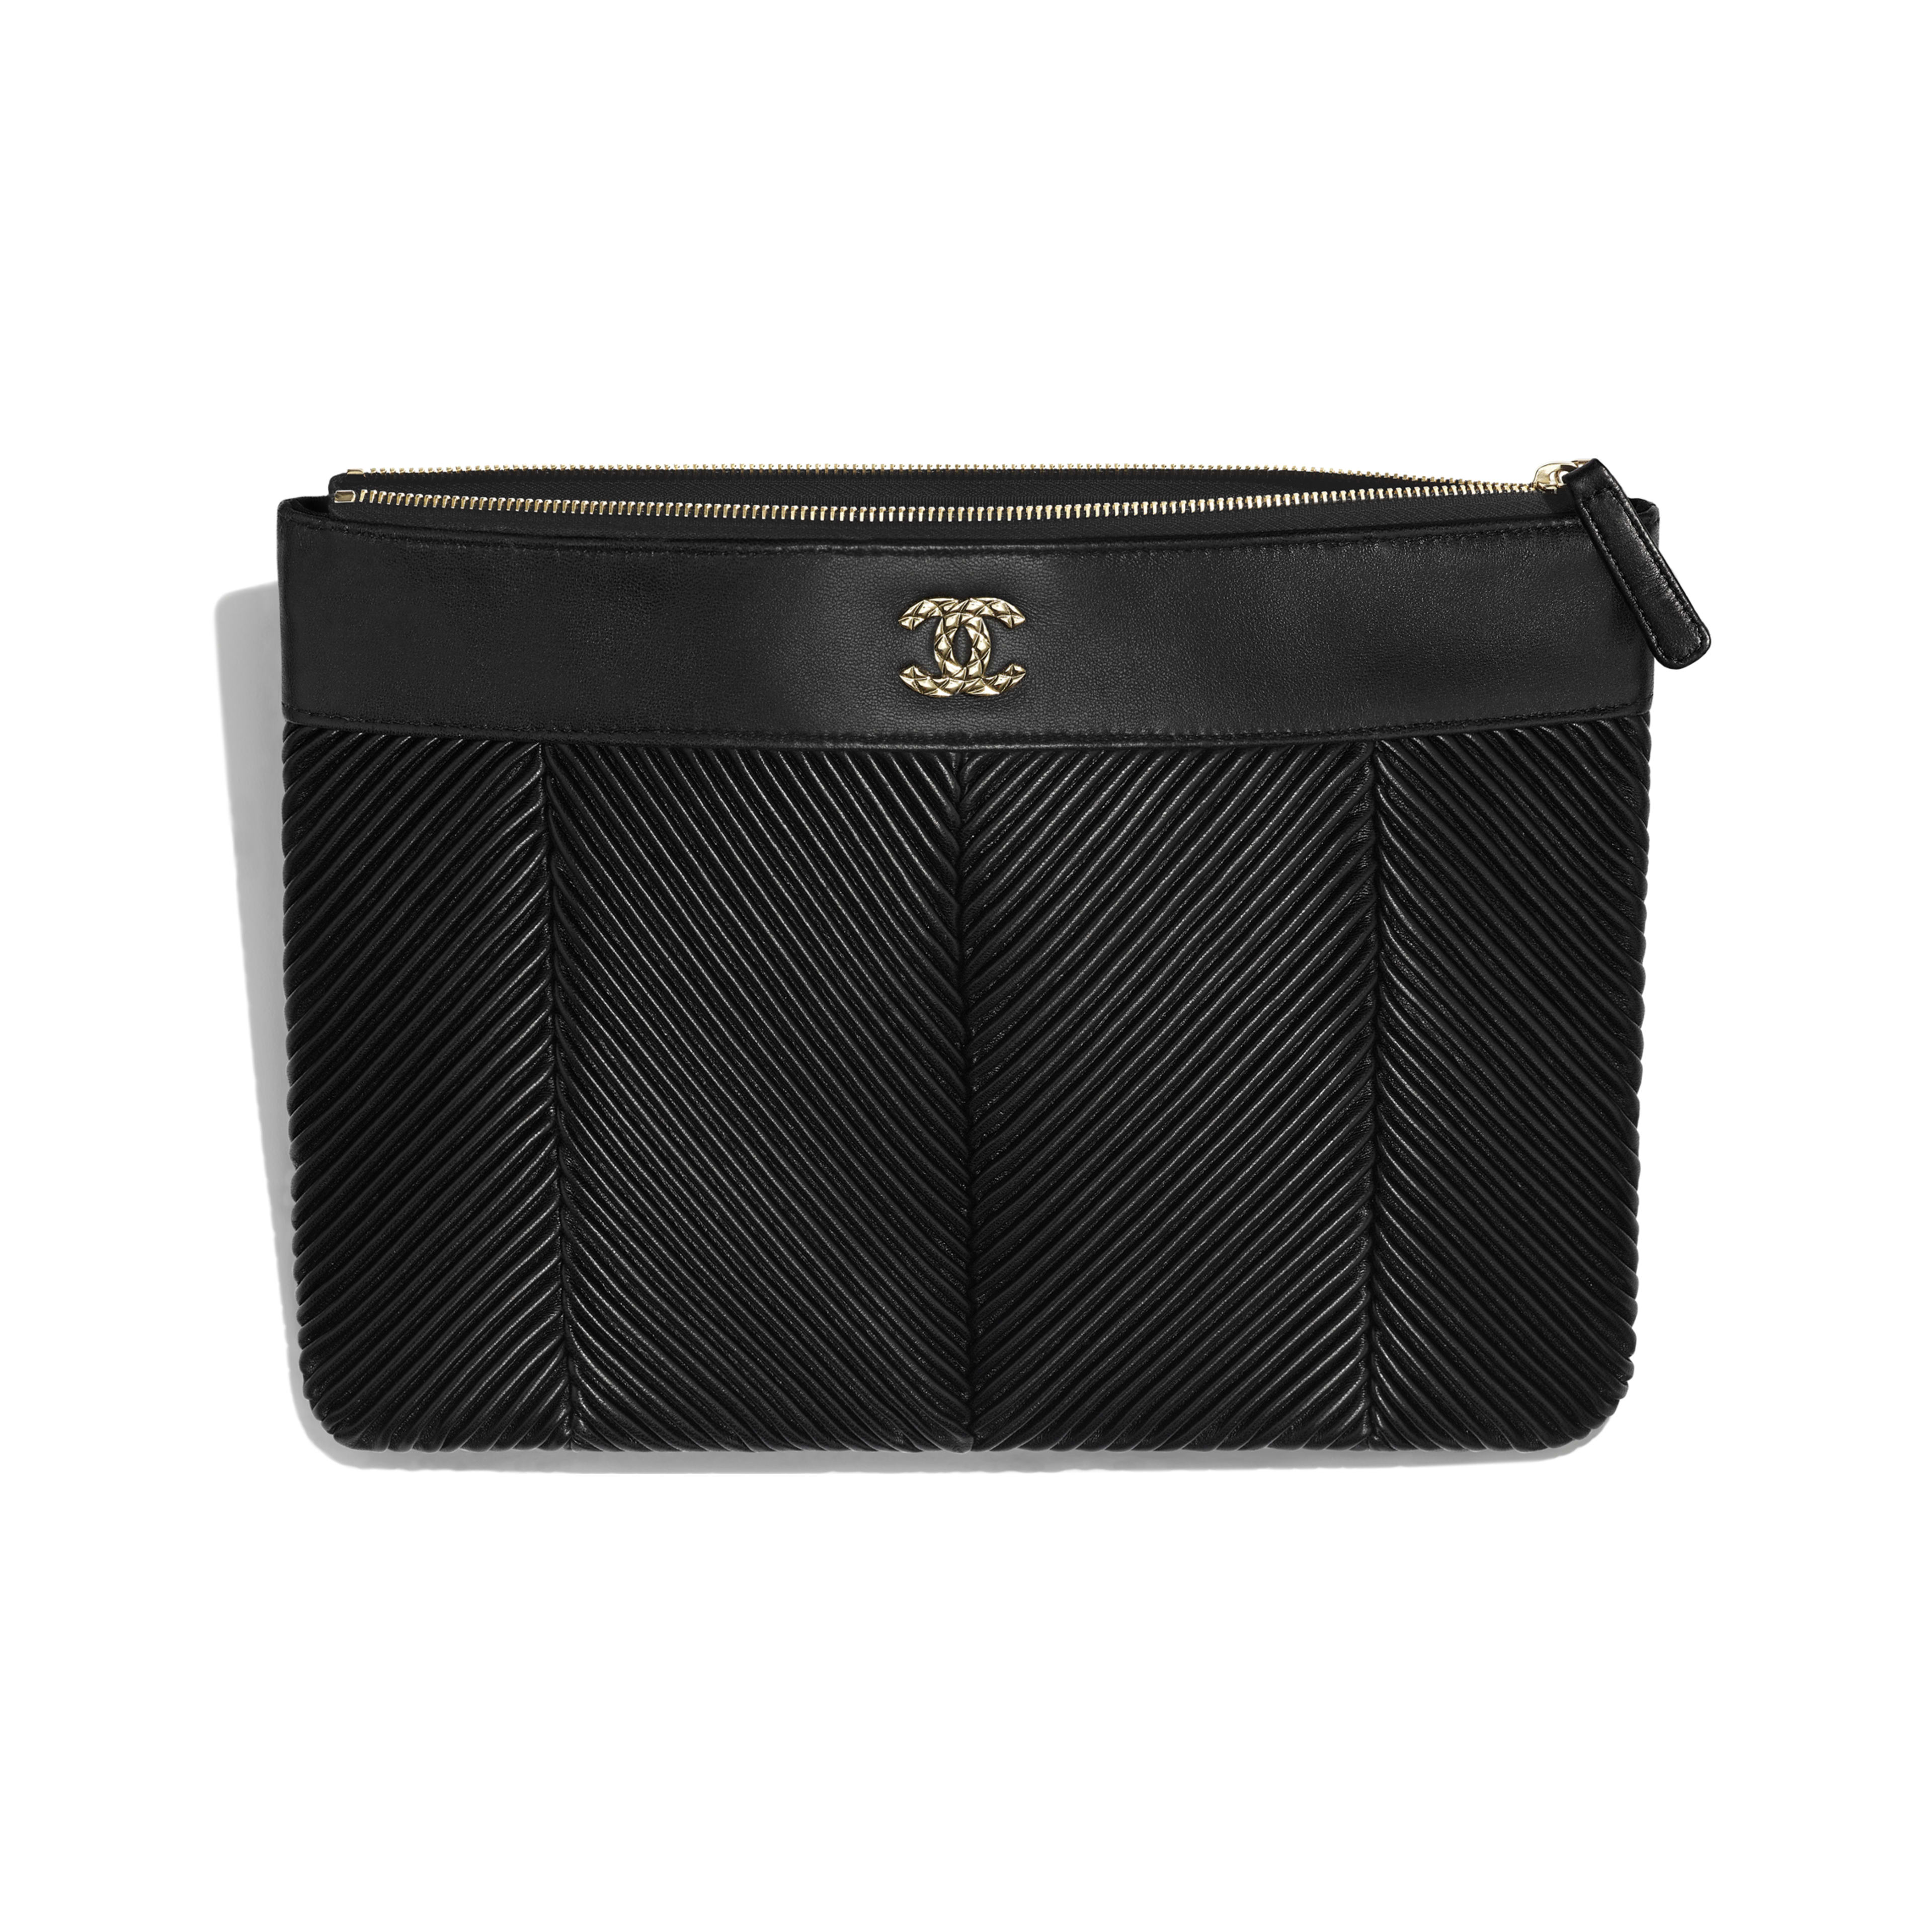 Pouch - Black - Lambskin & Gold-Tone Metal - Other view - see full sized version